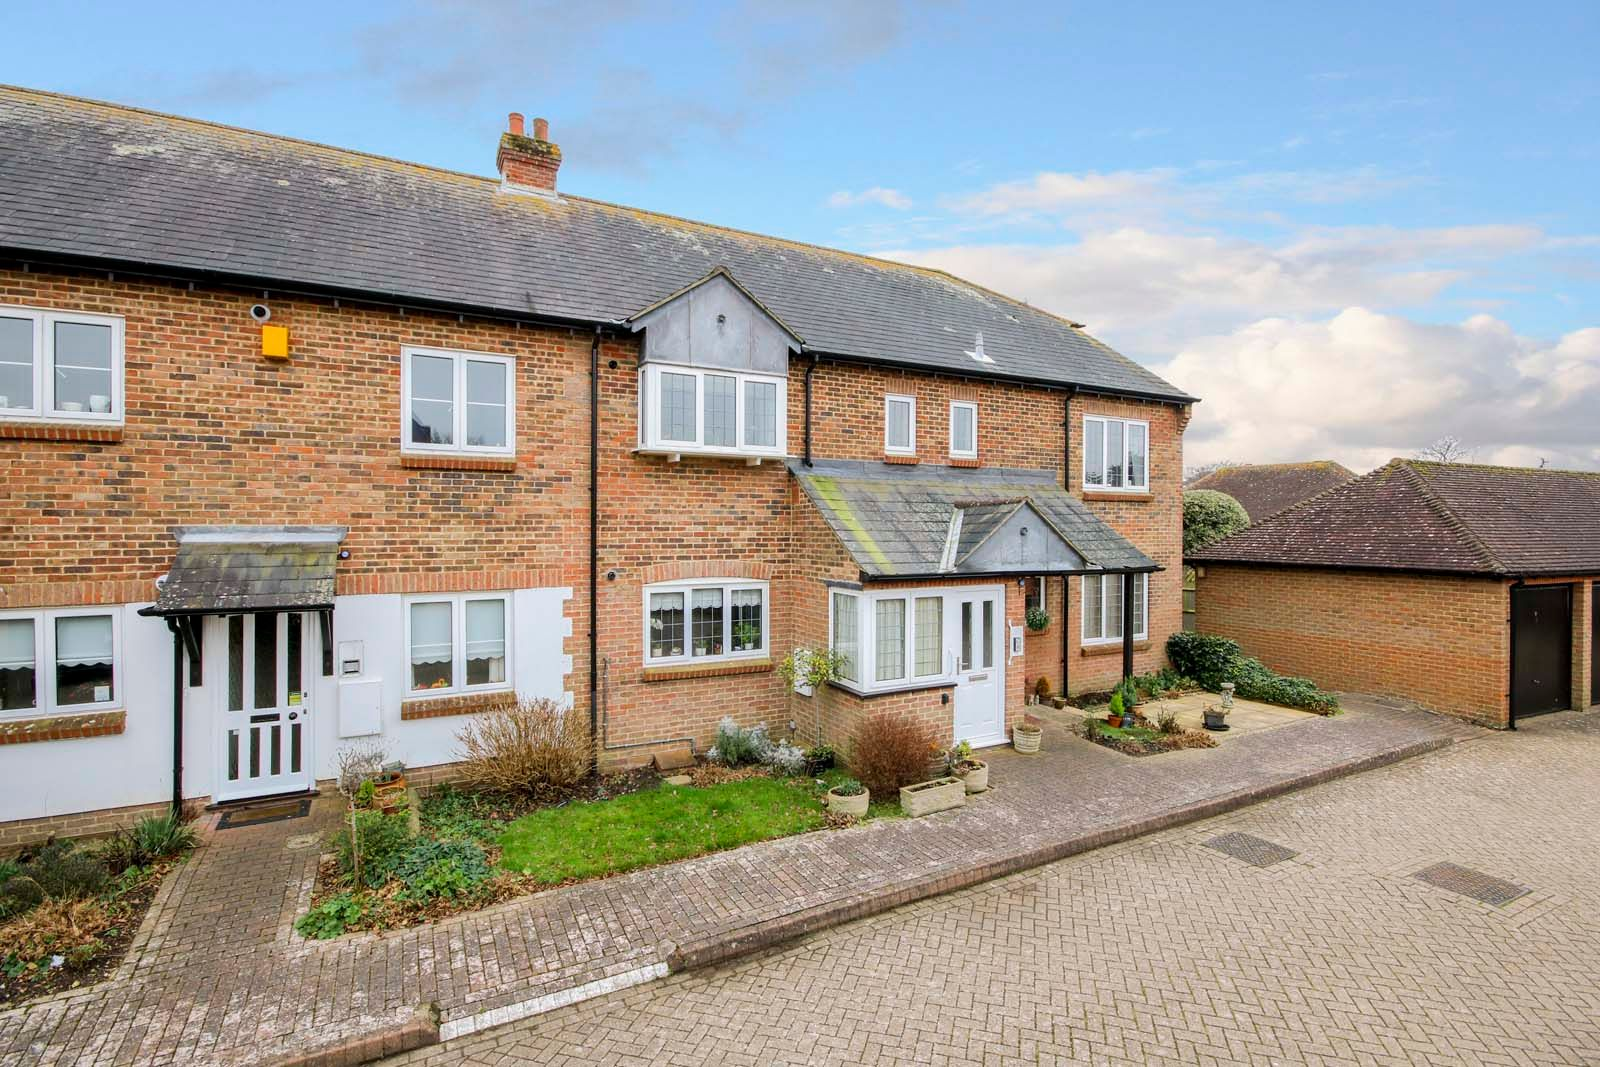 2 bed  for sale in Midholme 1